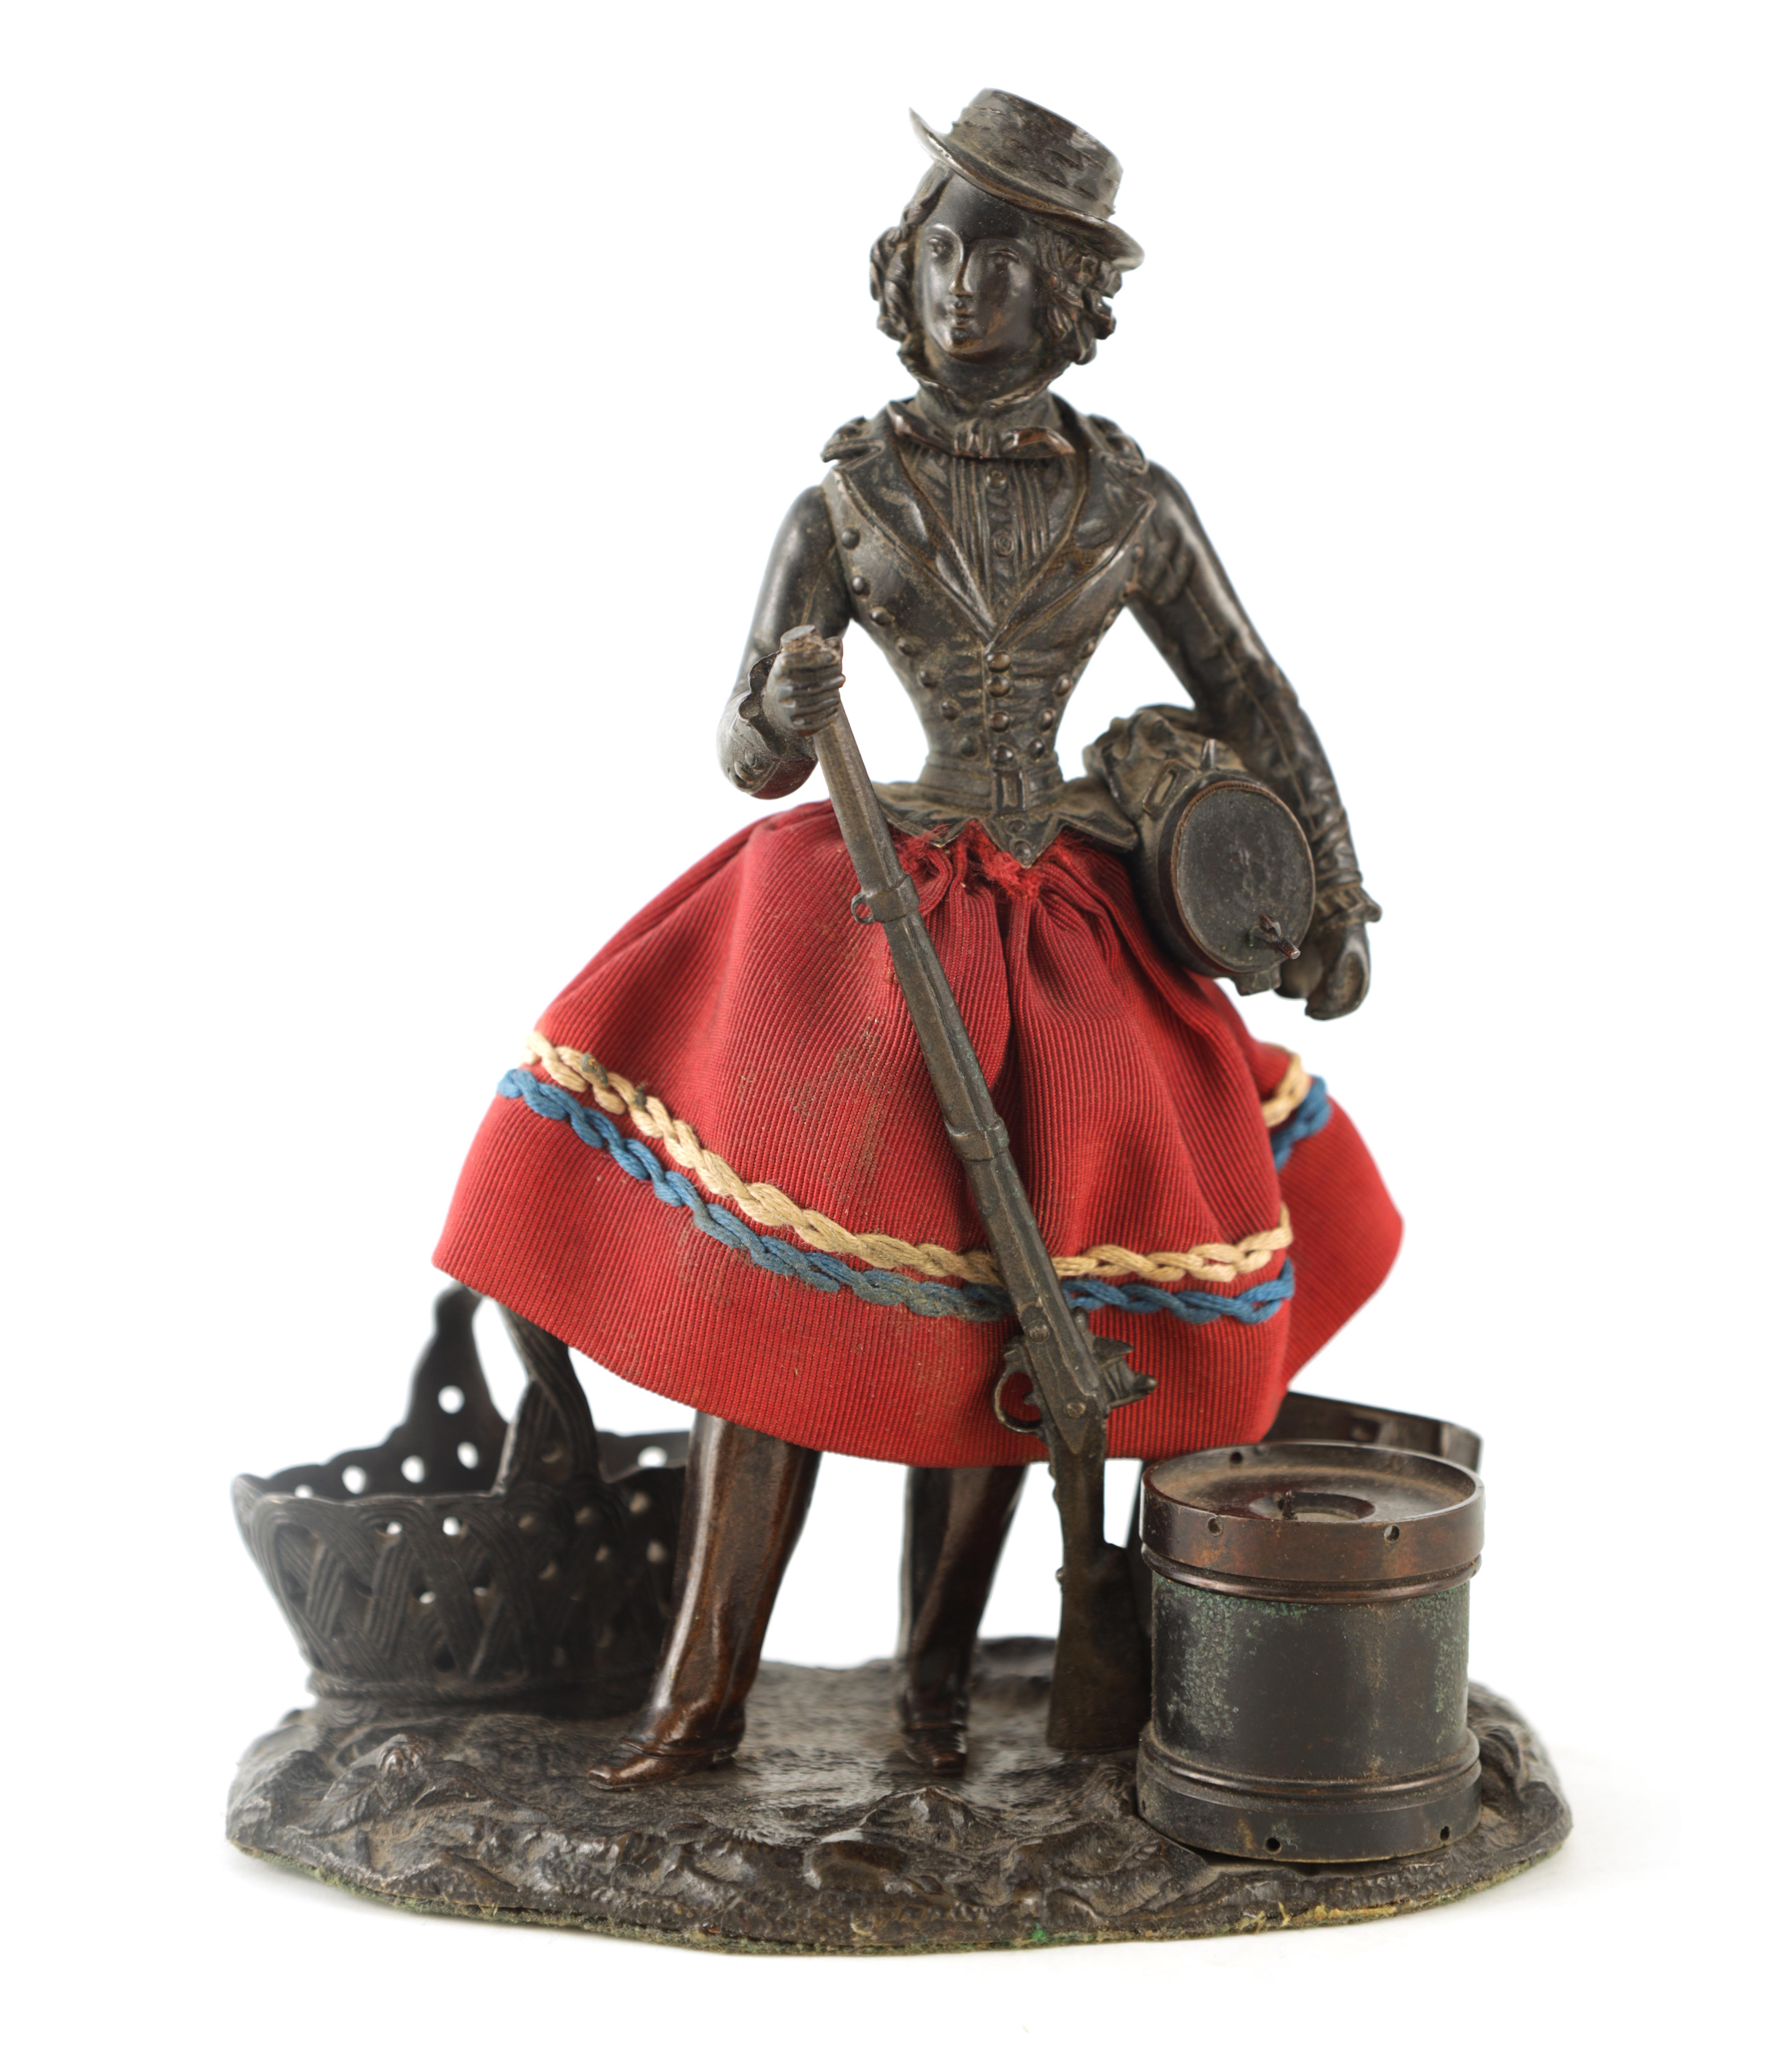 A LATE 19TH CENTURY NOVELTY BRONZE DESK COMPENDIUM DEPICTING A LADY HOLDING A RIFFLE with red